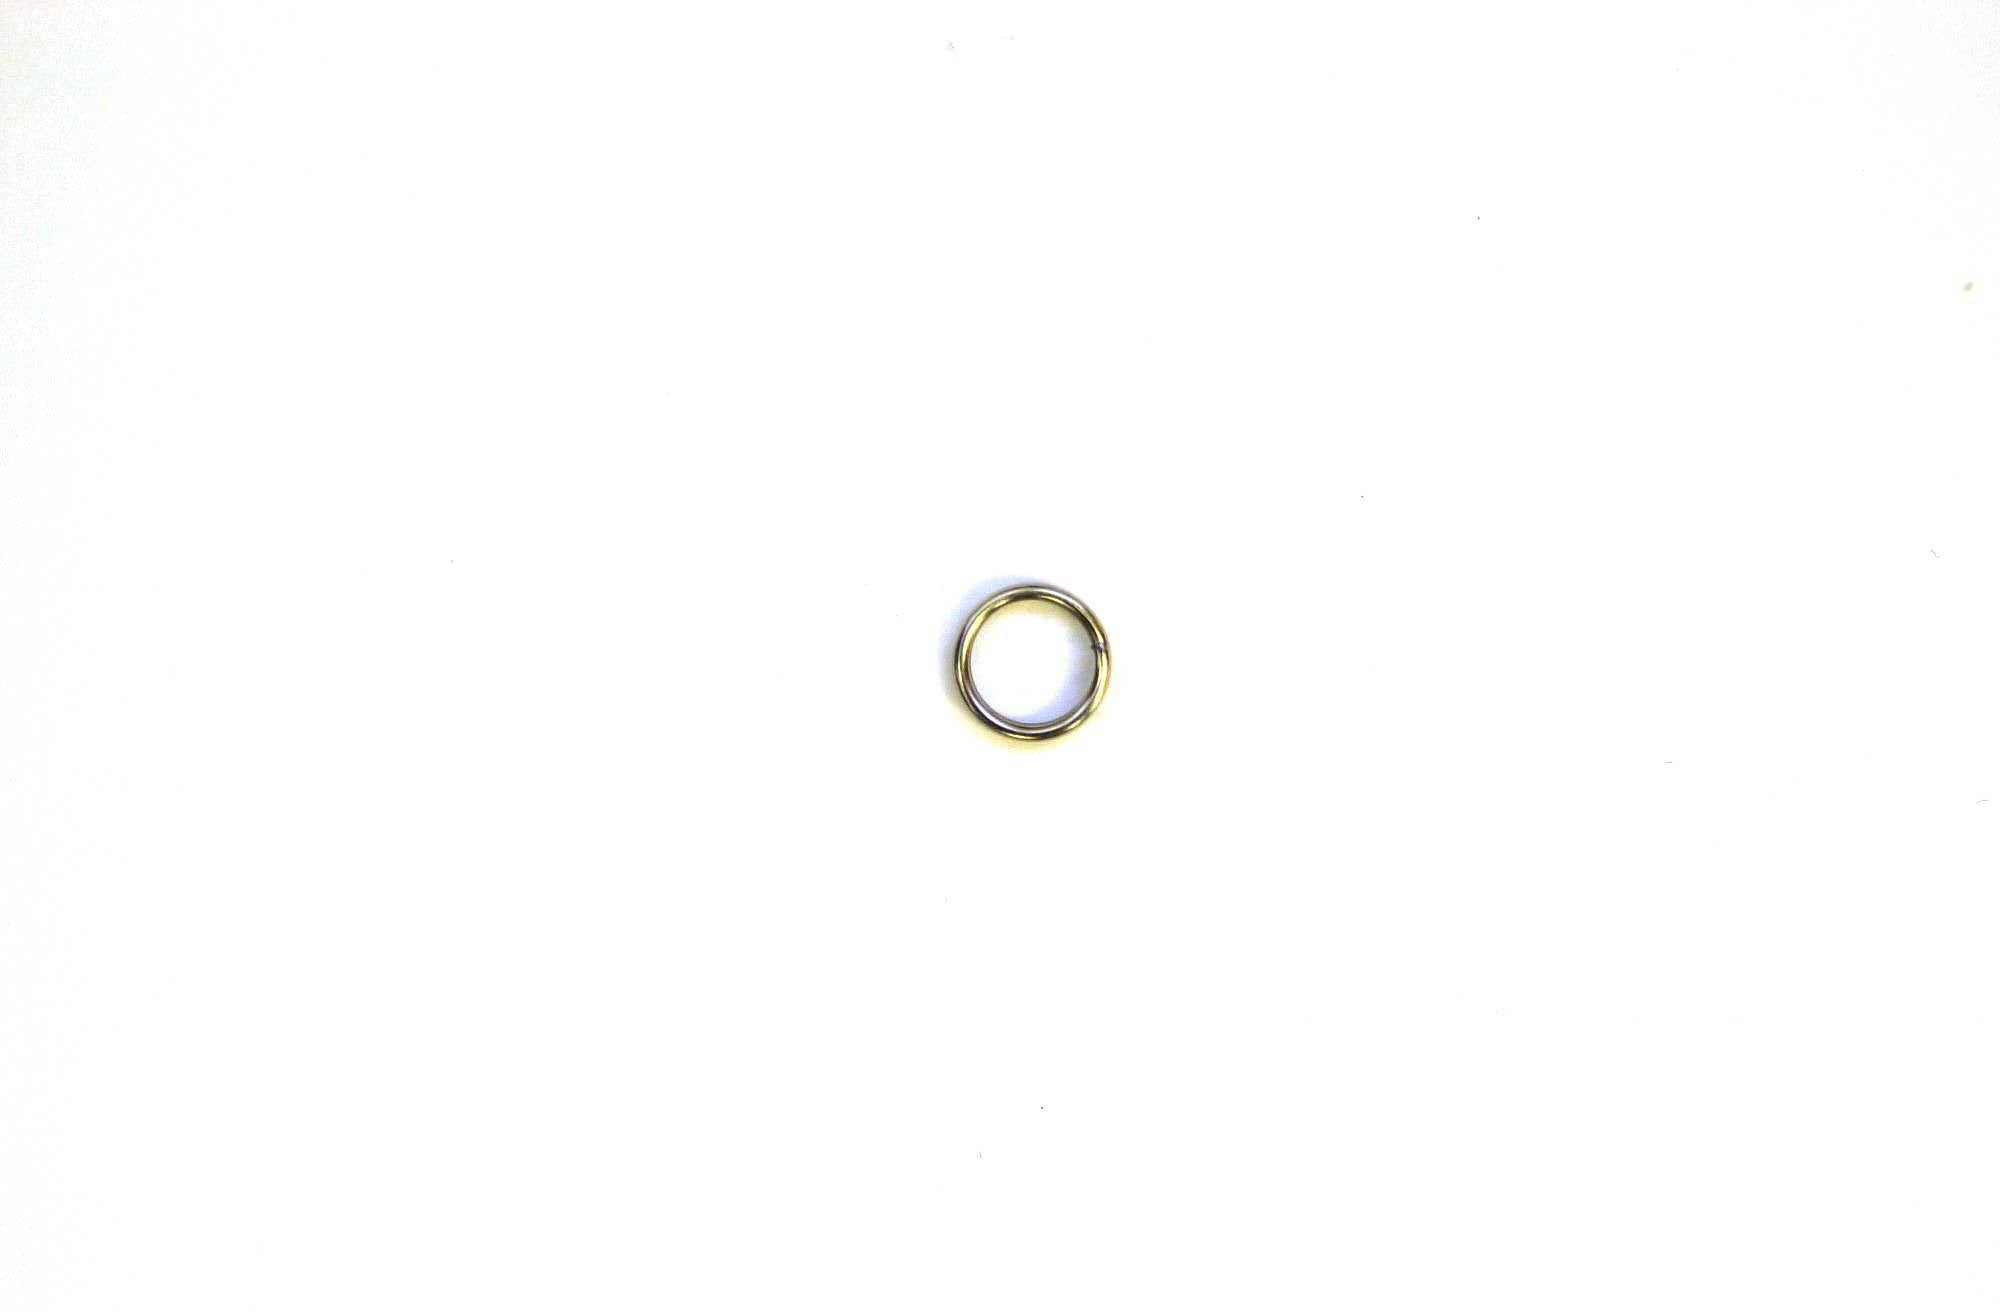 Eagle Claw Split Rings Nickle 10ct Size 2